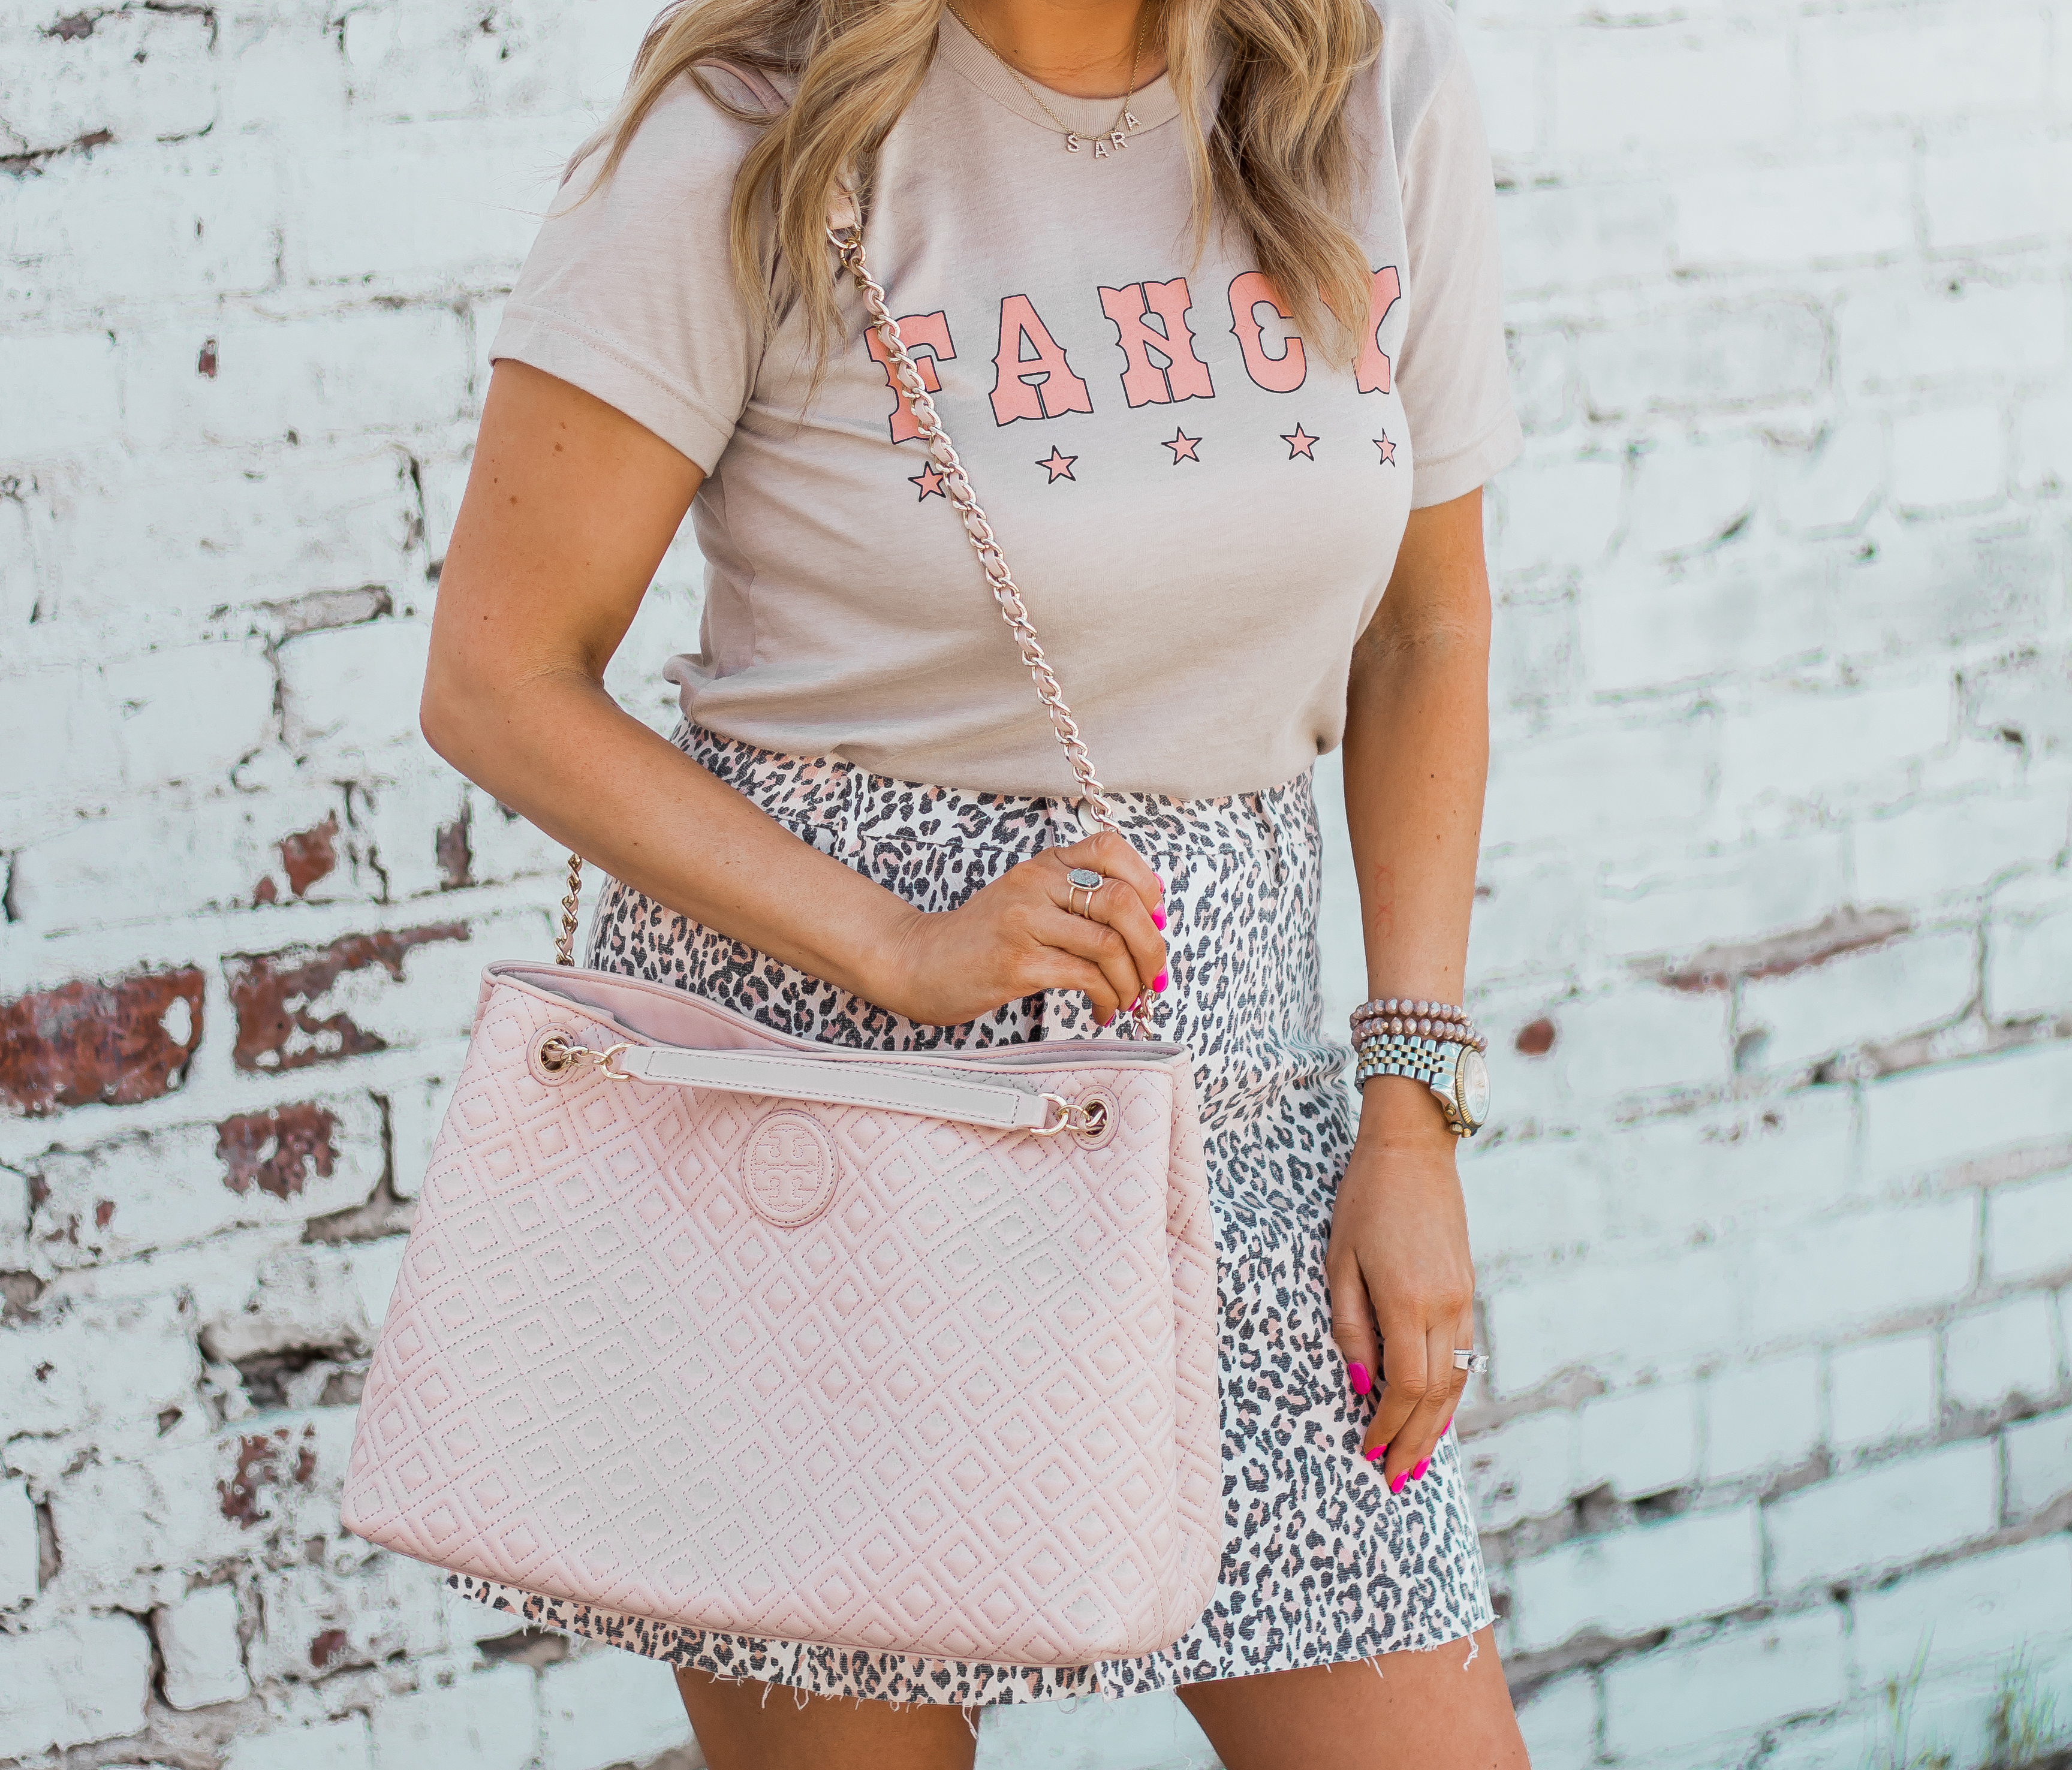 Fancy Graphic Tee-Leopard Skirt-Sugar Boutique-$250 Gift Card Giveaway-Tory Burch Fleming Bag-Quay Sunglasses-Sabby Style-Omaha Blogger-Women's Fashion-Spring Fashion-Summer Outfit-8